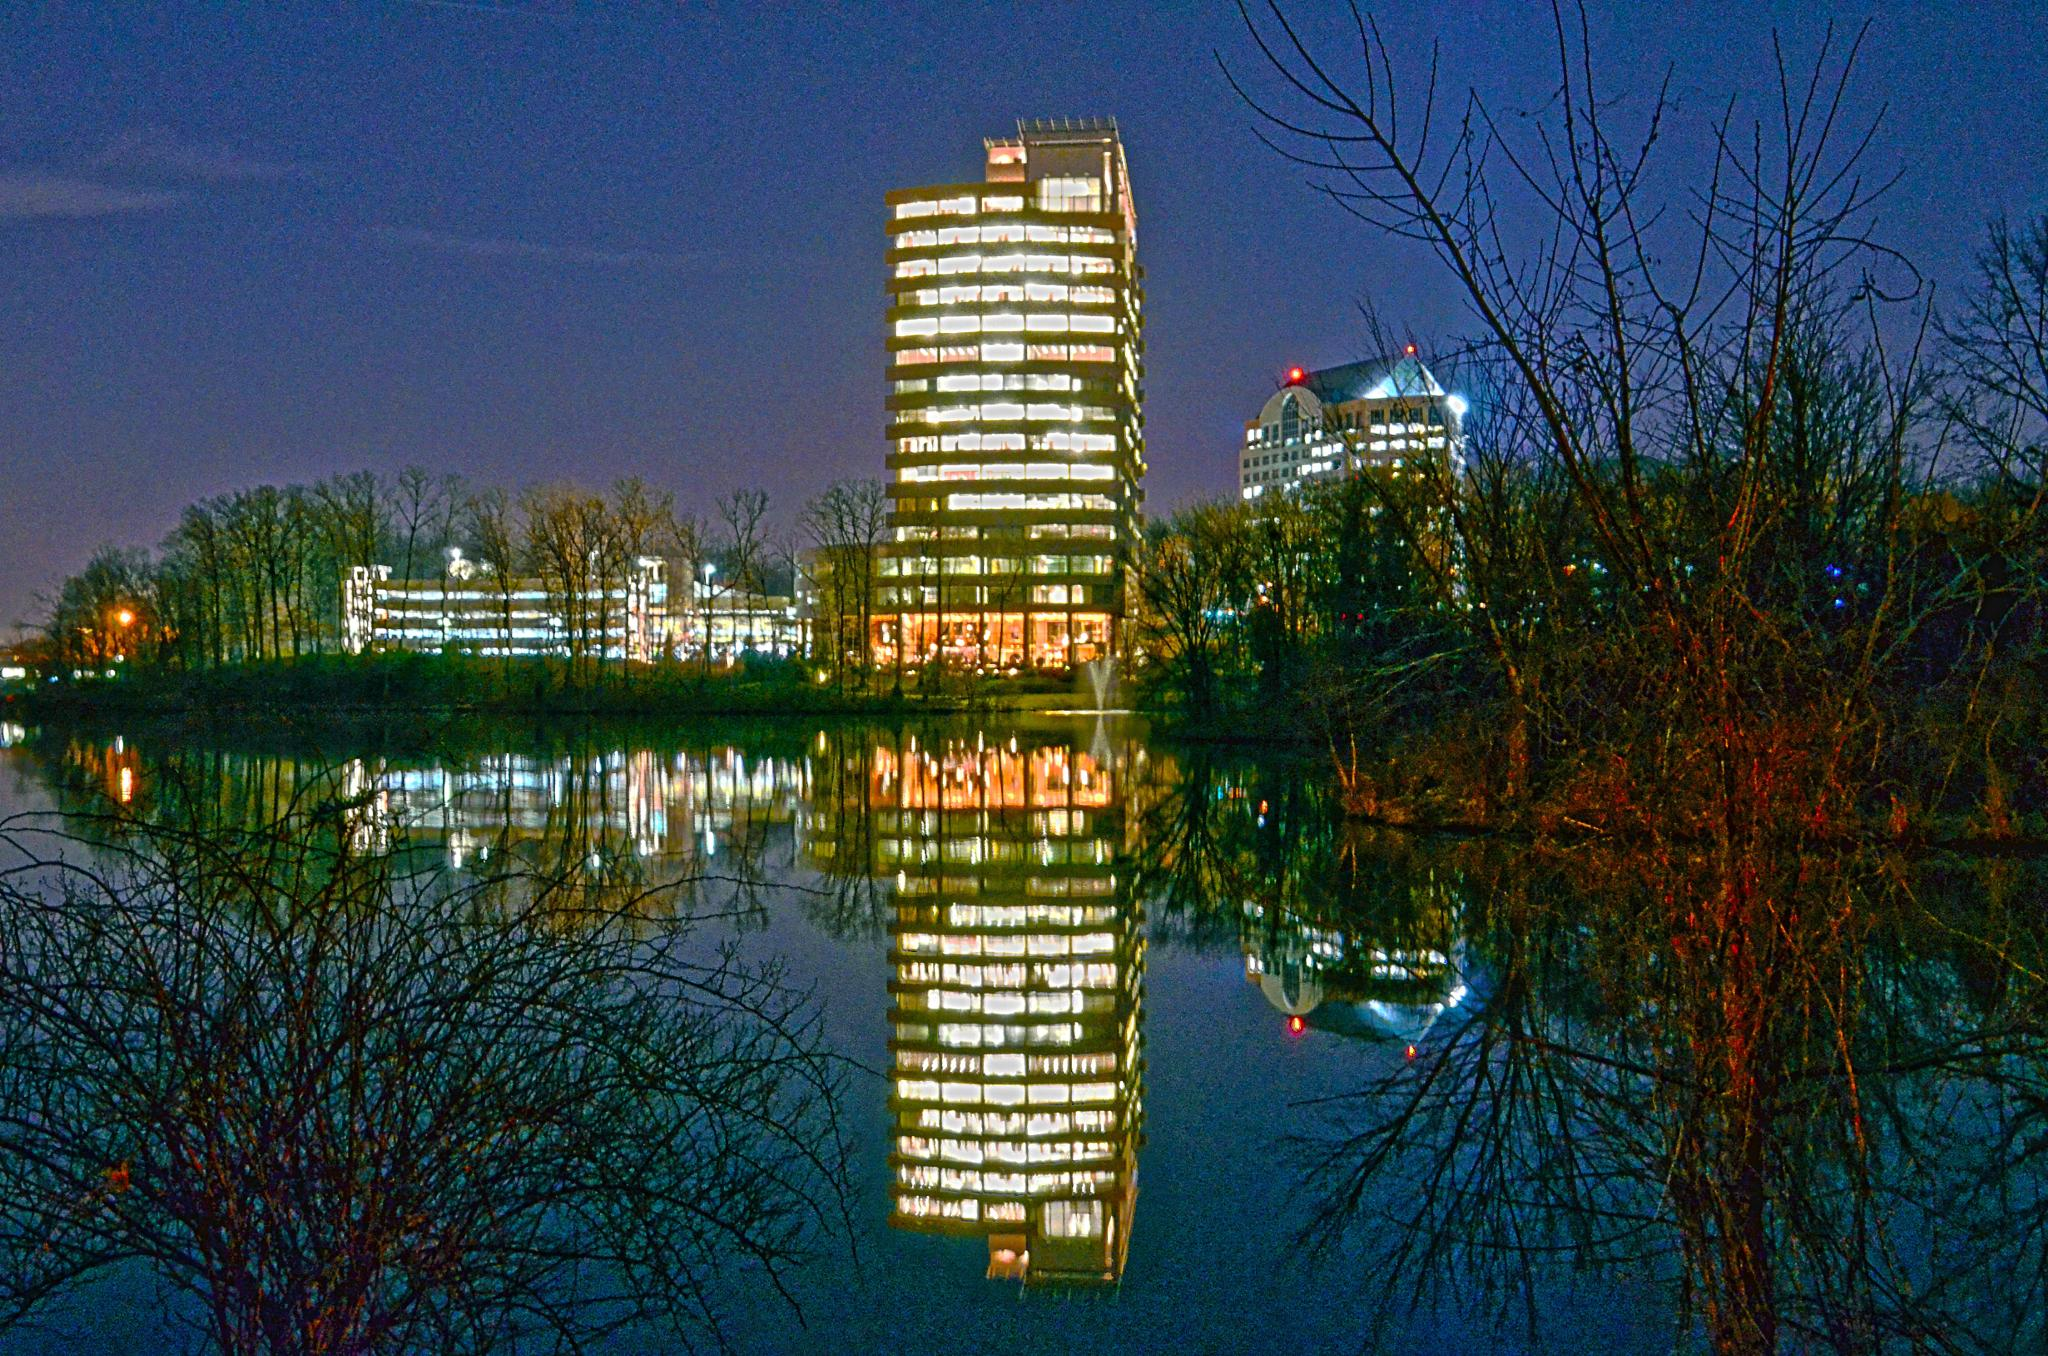 Night Tower in Falls Church by Wayne V. Hall (WALL Photography and Design)